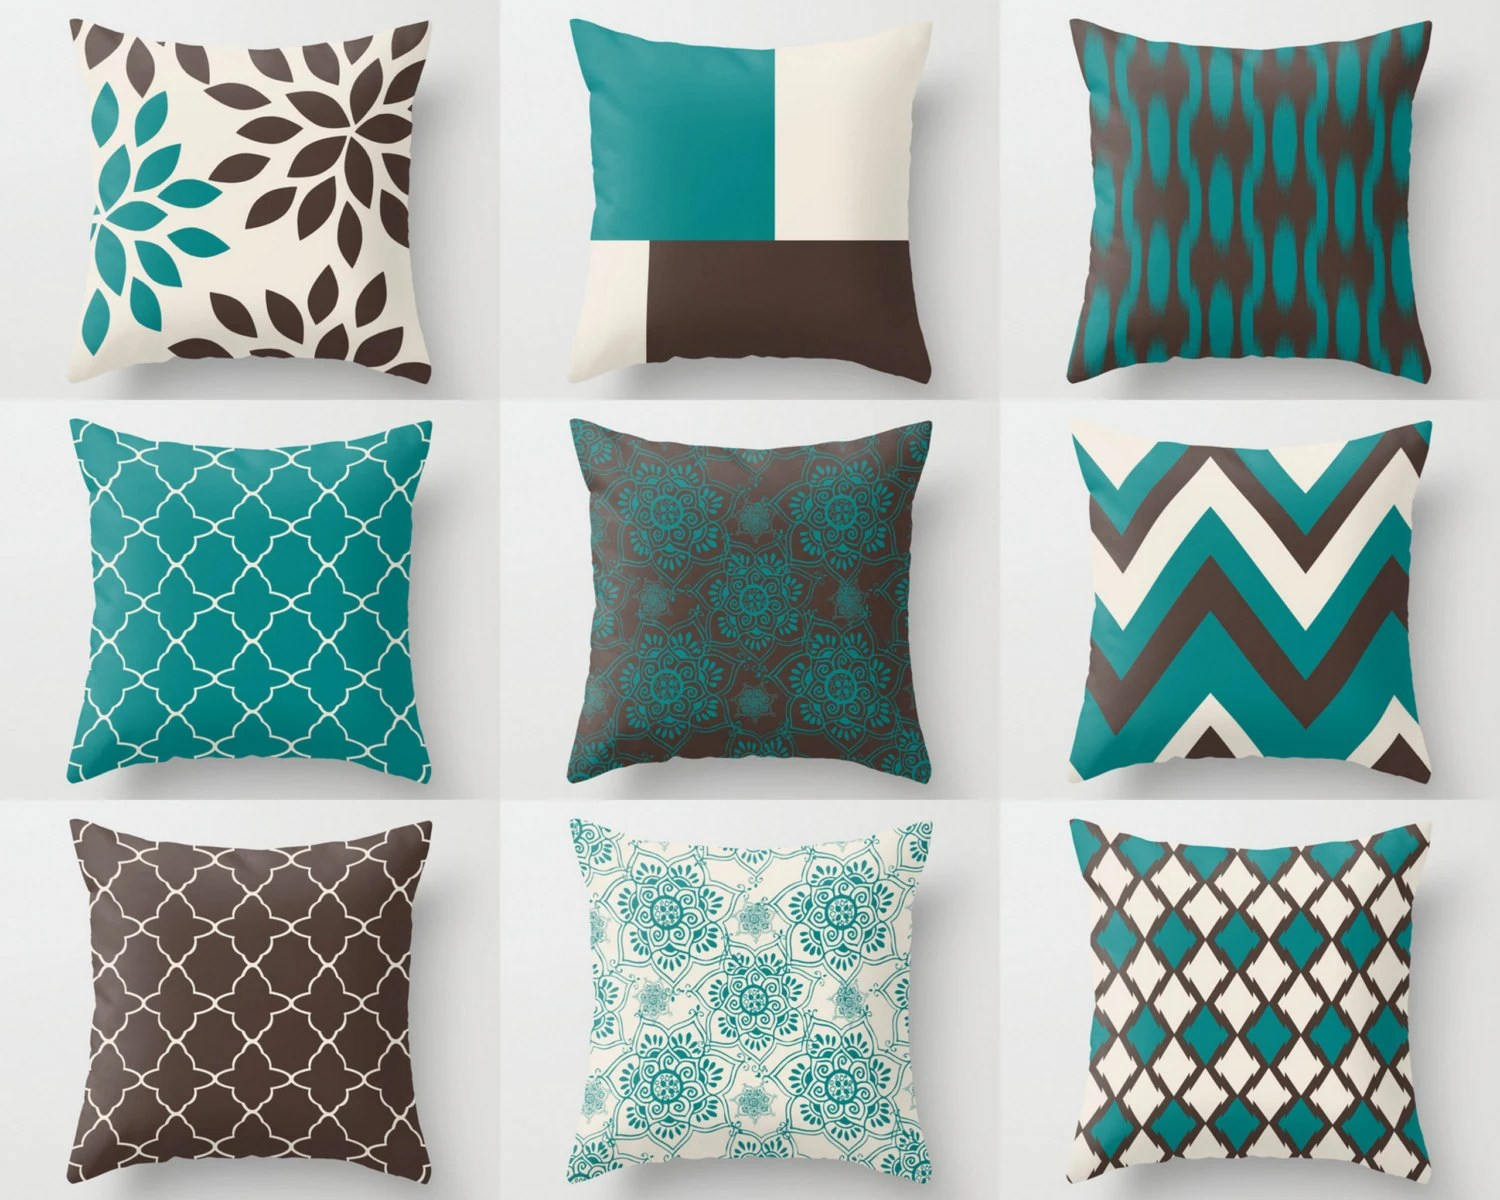 Cojines Chocolate Teal Brown Pillows Pillow Covers Teal Chocolate By